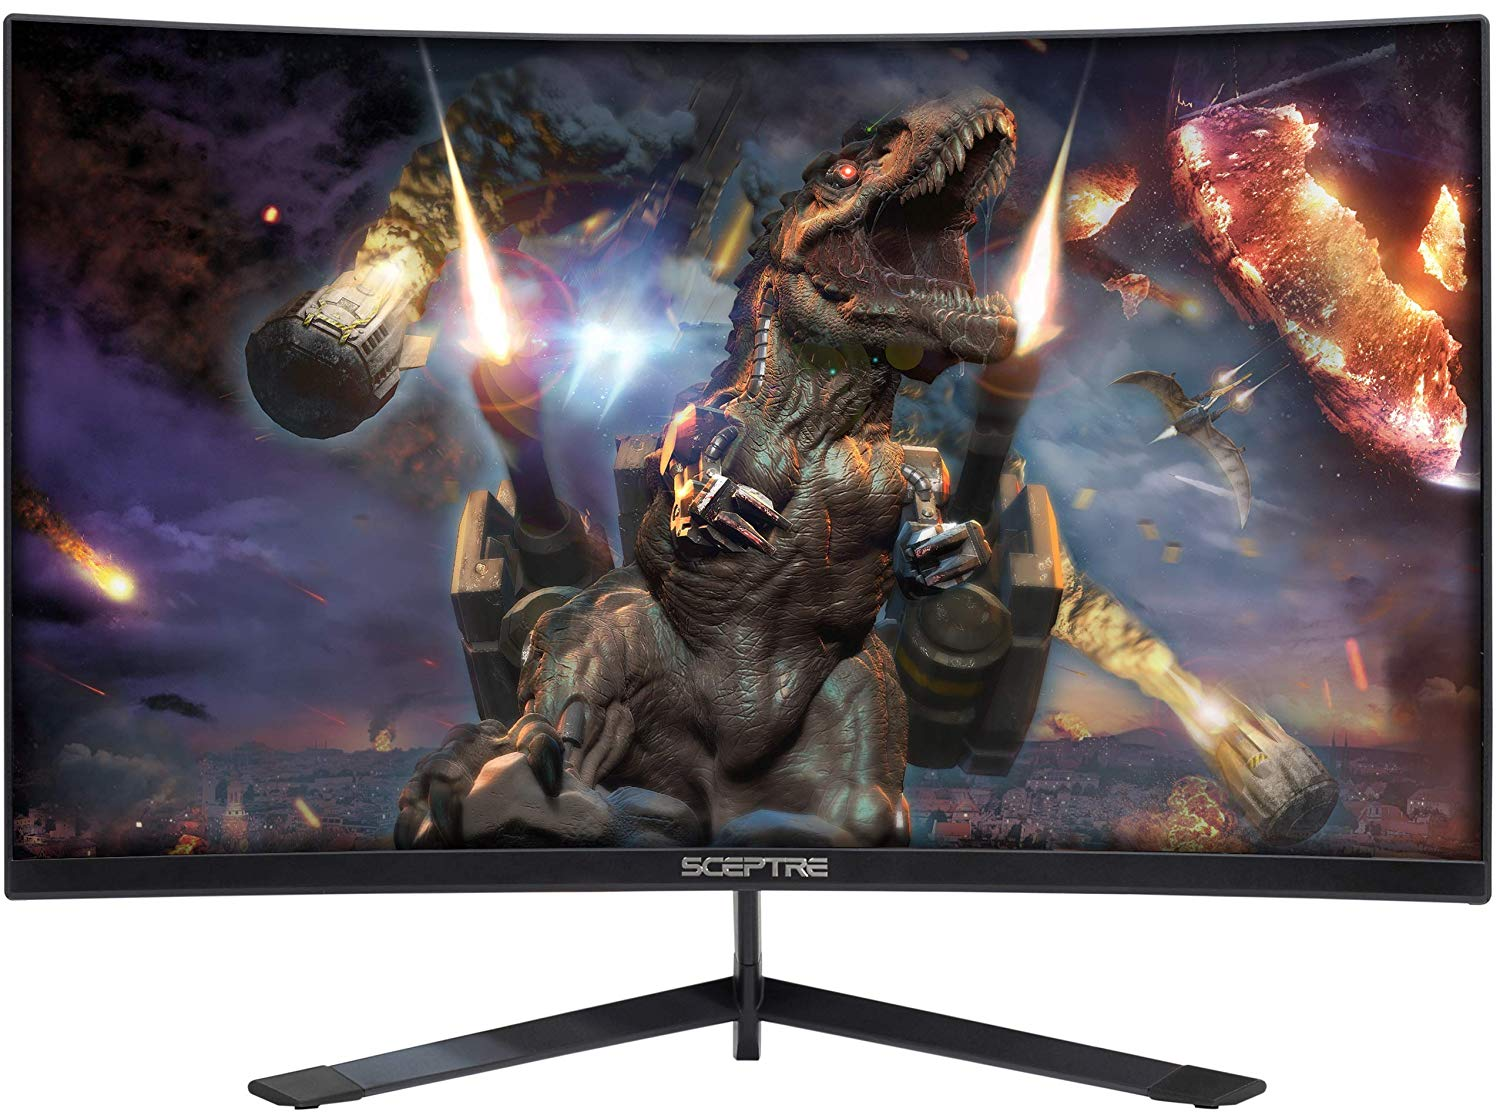 The 8 Best & Cheap 144Hz Gaming Monitors (Reviewed December 2019) 2